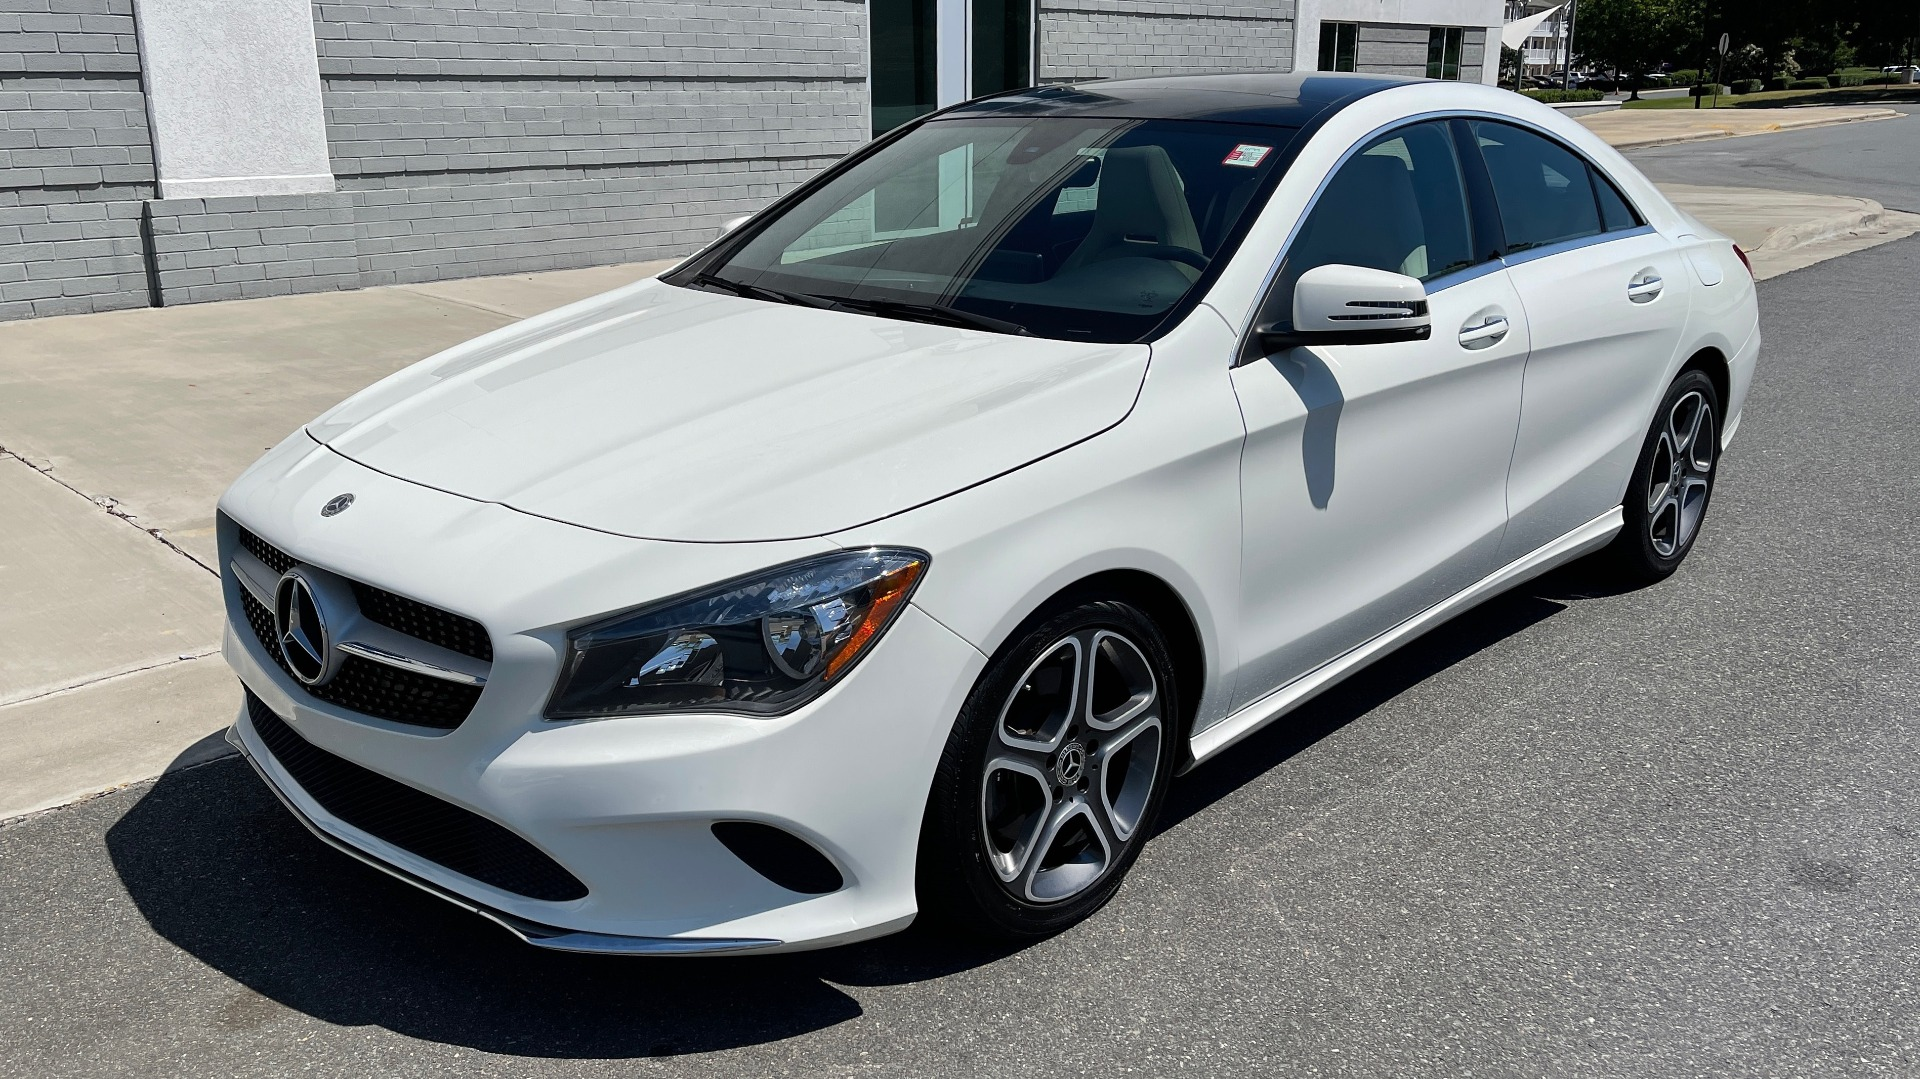 Used 2018 Mercedes-Benz CLA 250 PREMIUM / CONV PKG / APPLE / PANO-ROOF / REARVIEW for sale $29,795 at Formula Imports in Charlotte NC 28227 3